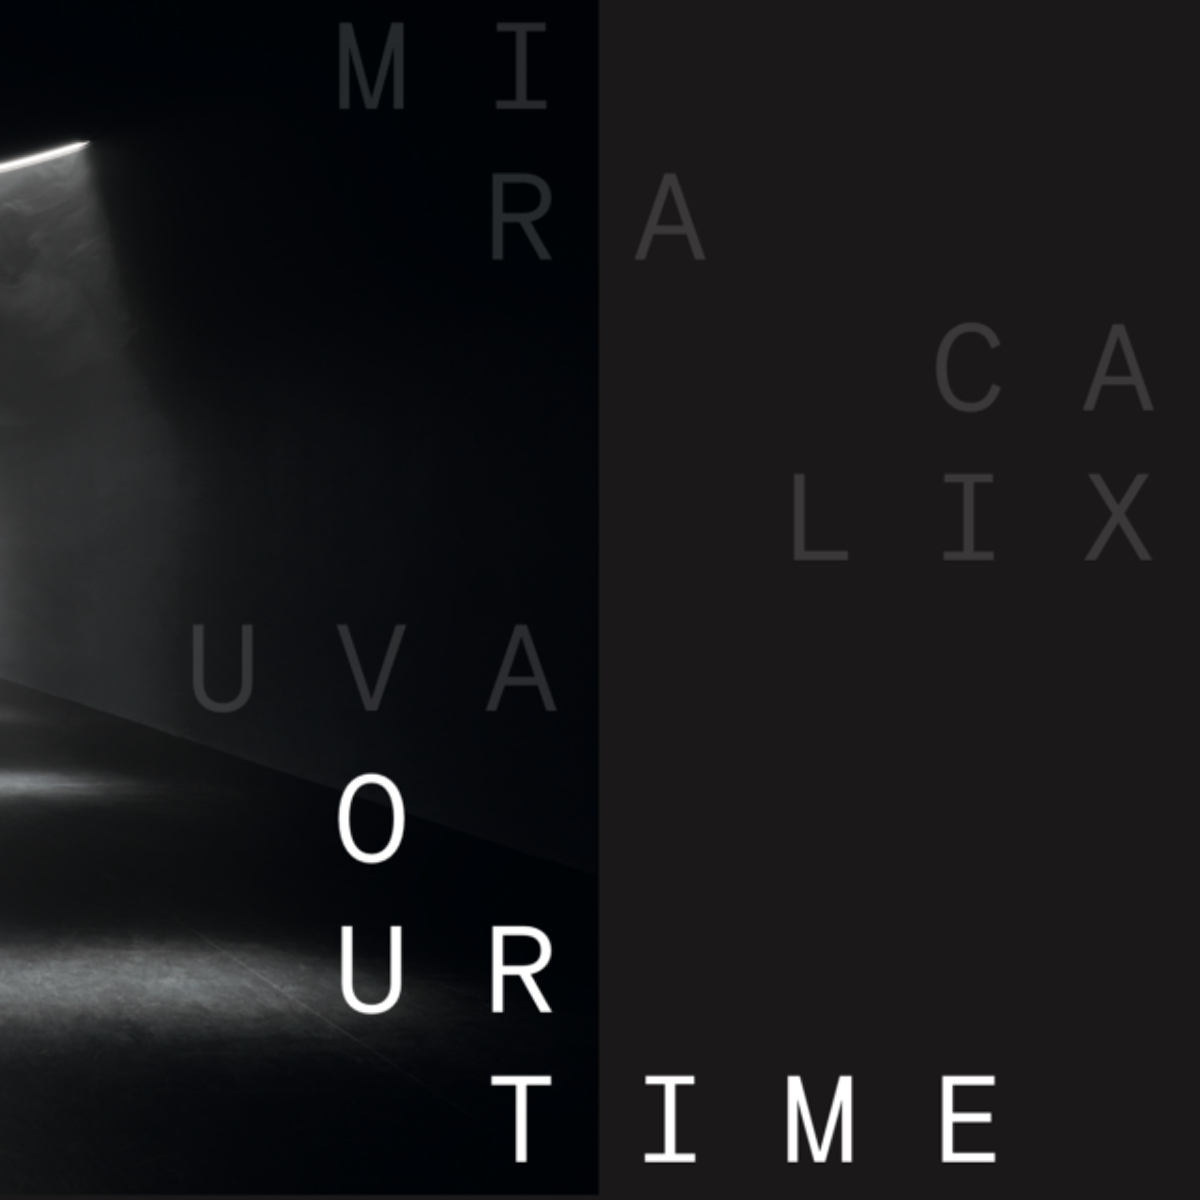 Mira Calix releases United Visual Artists soundtrack, Our Time